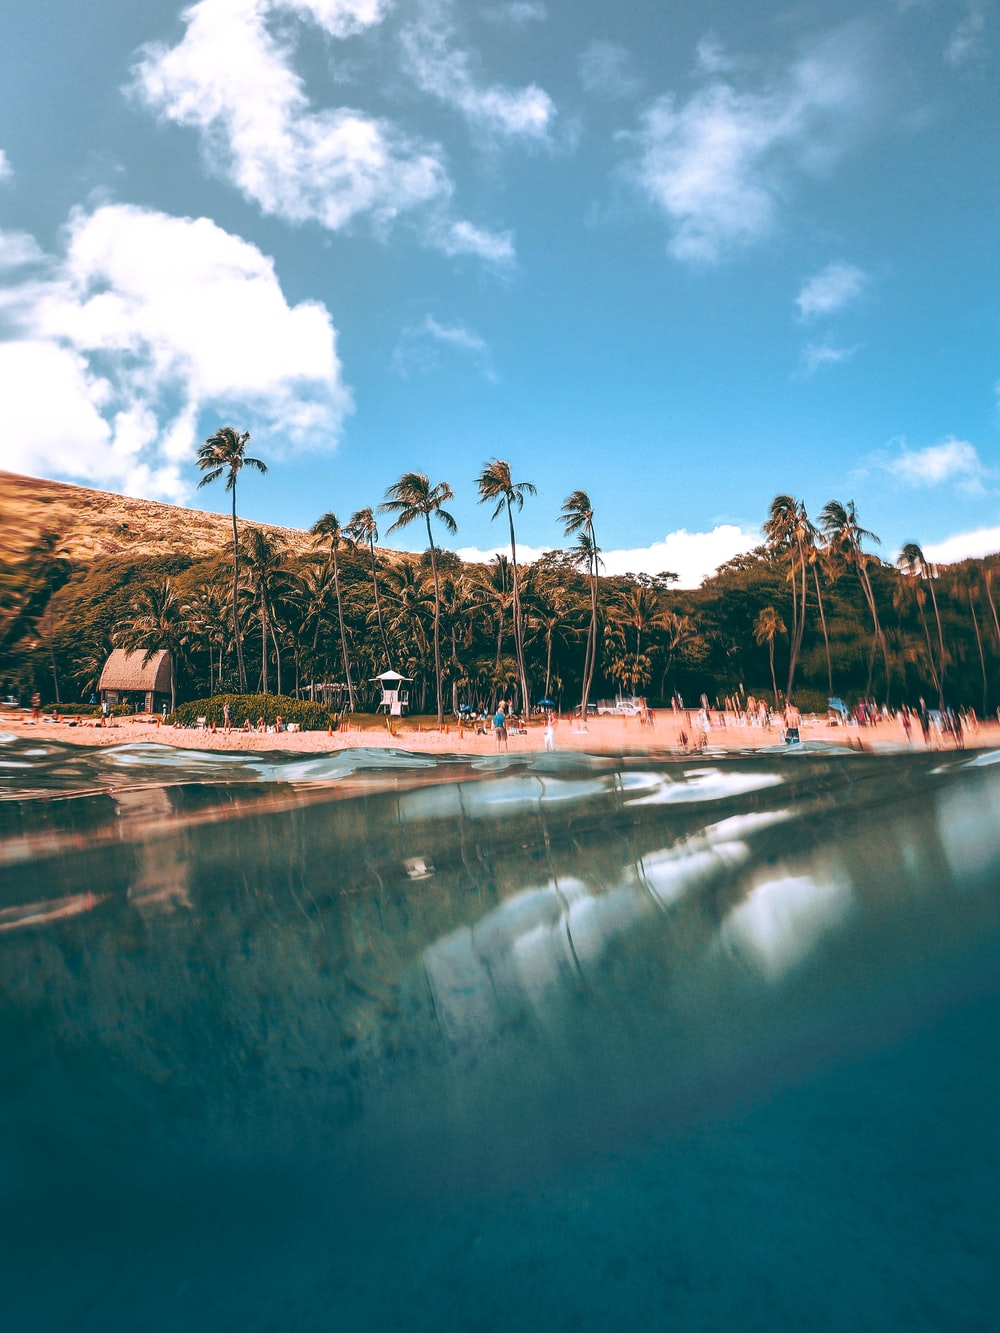 coconut trees reflecting on still body of water